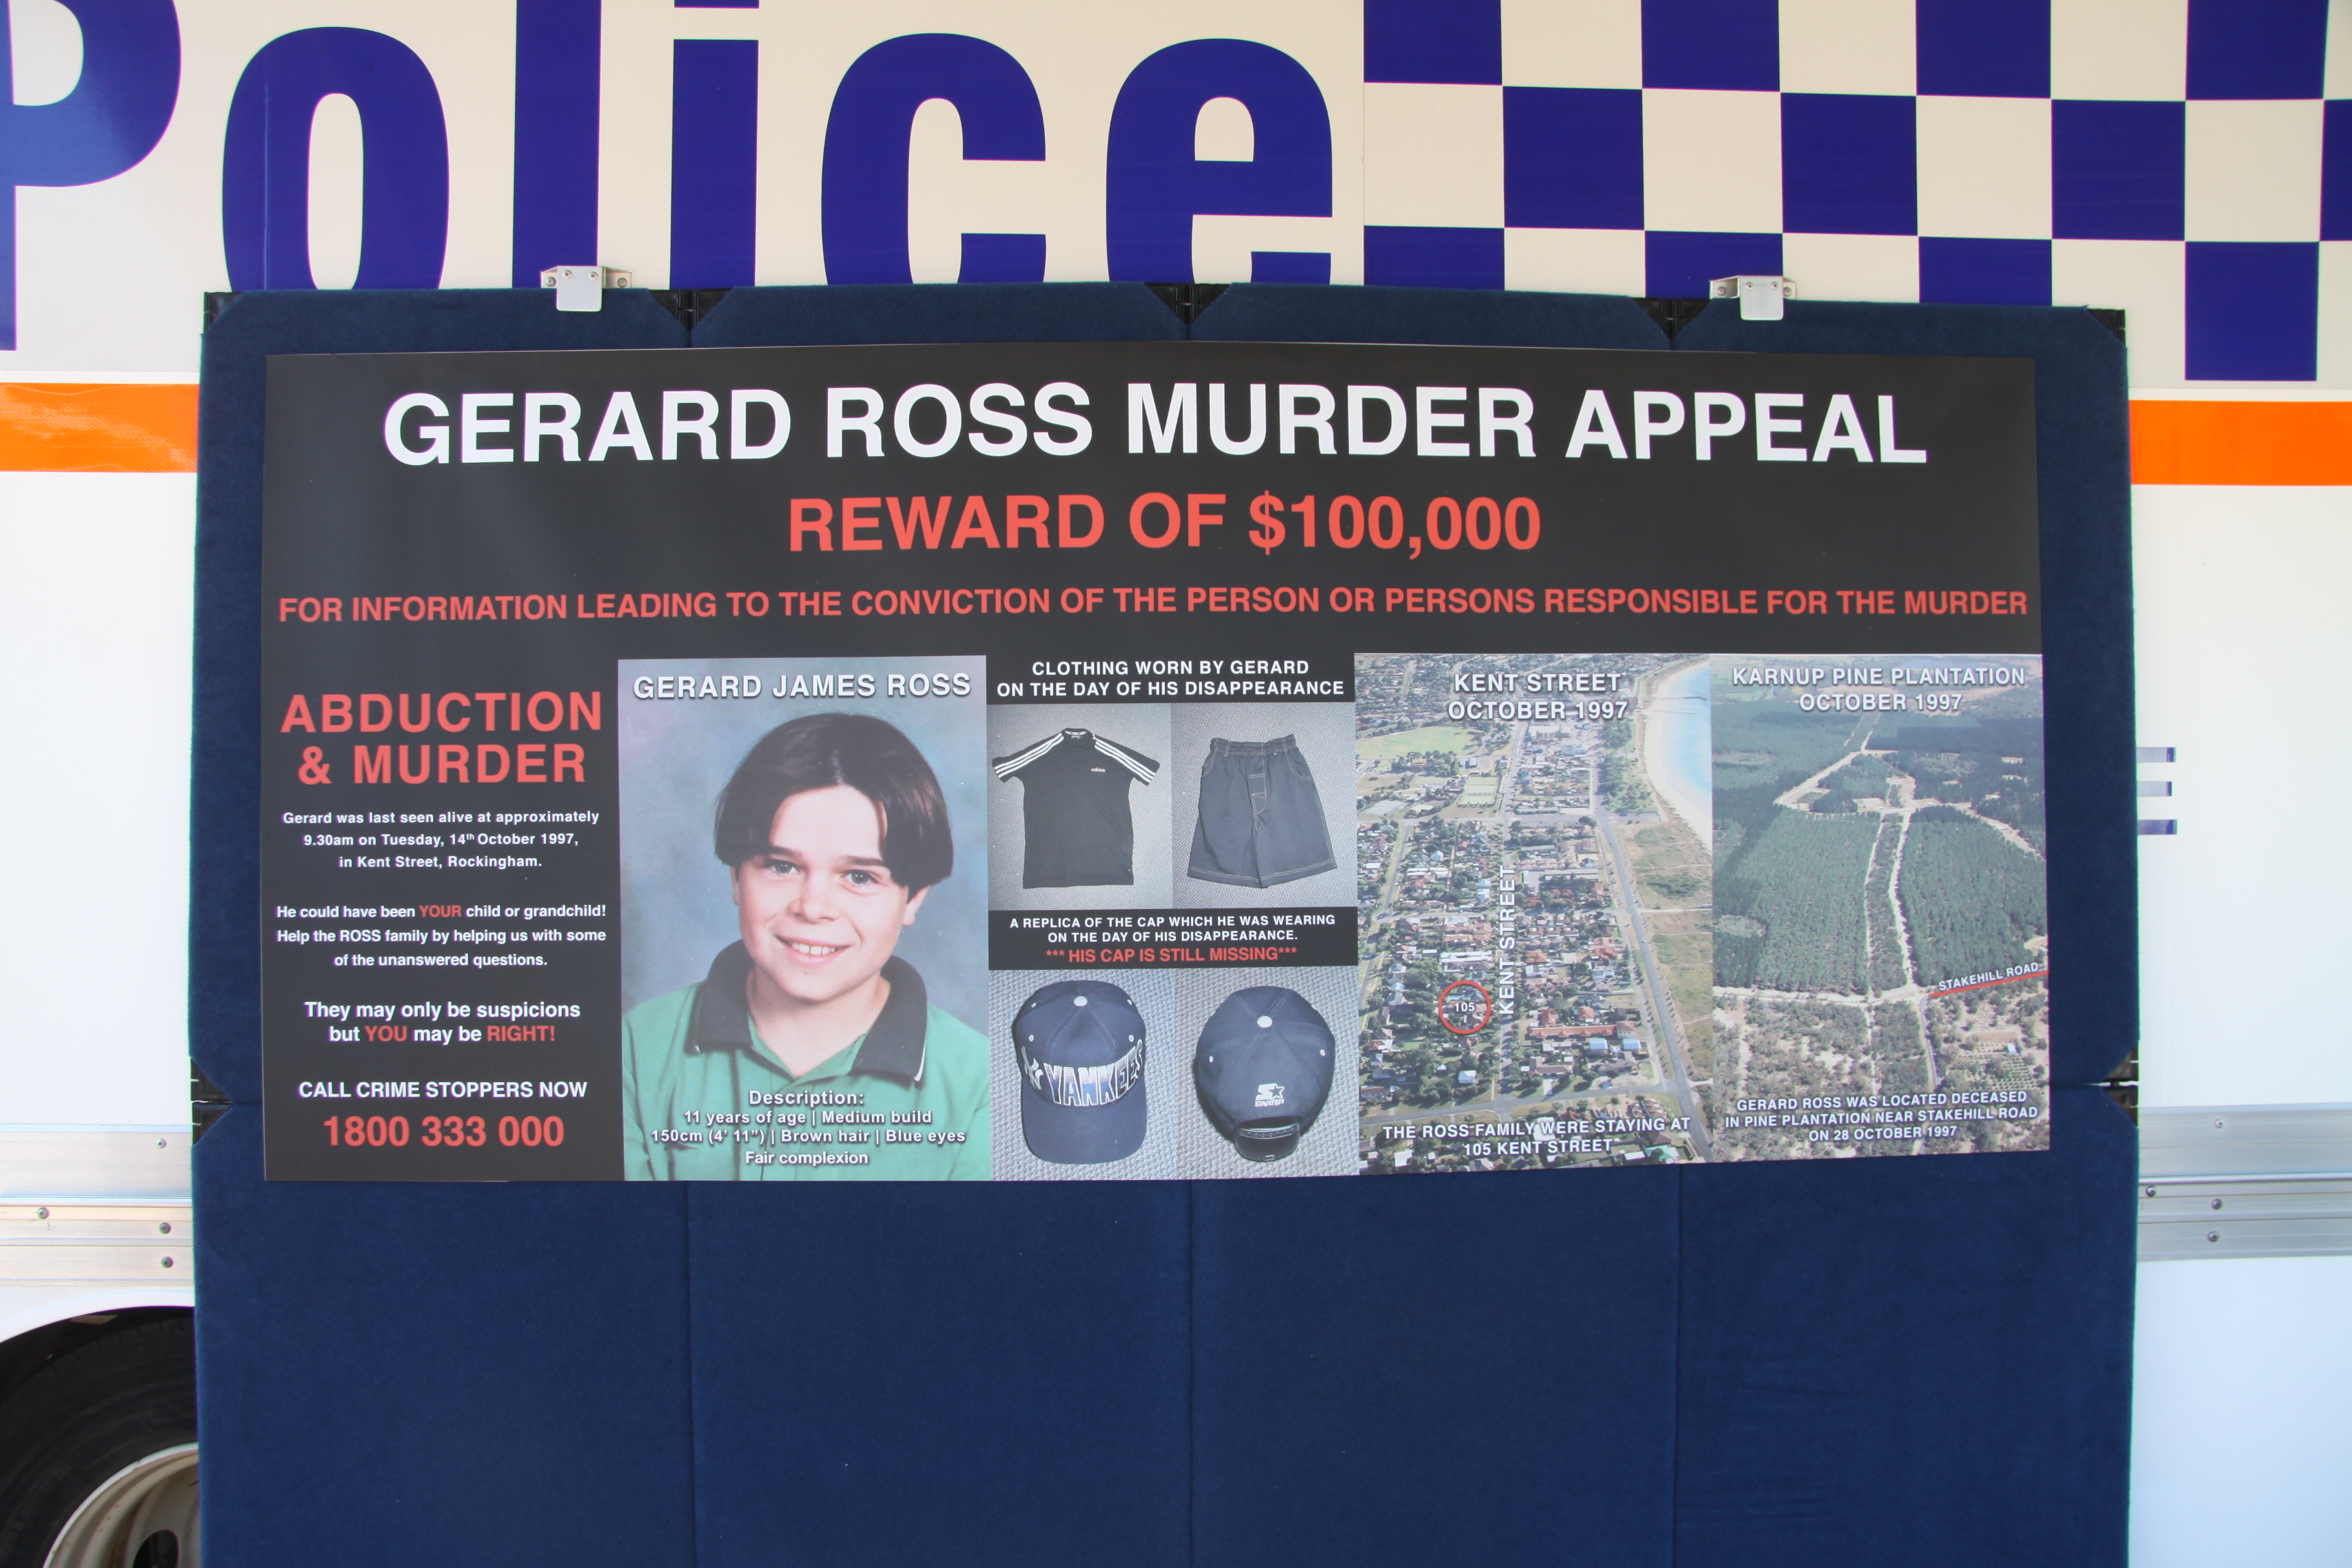 Gerard Ross murder: WA Police identify 'persons of interest', rule out Cowan